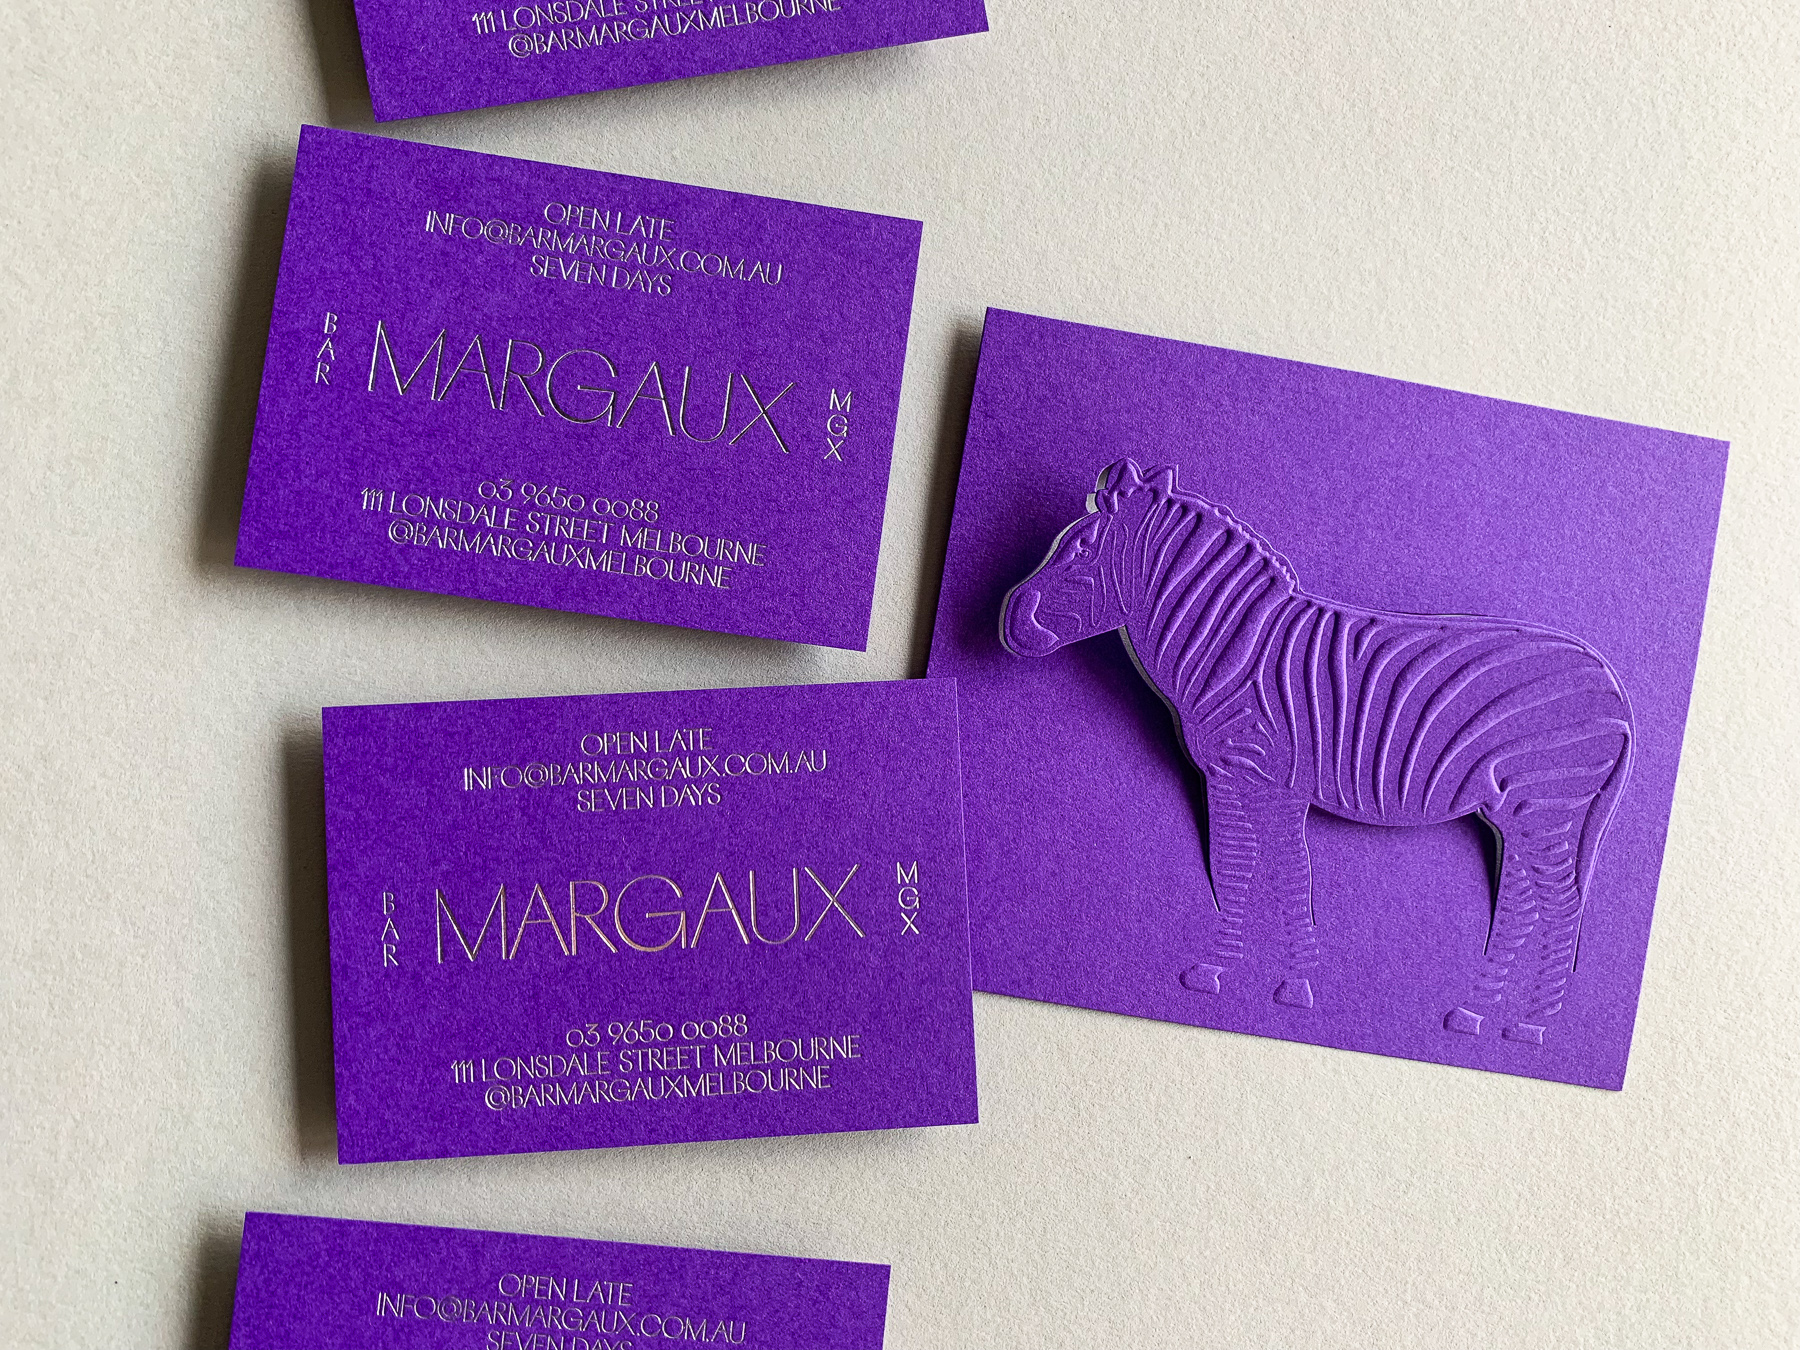 Foil business cards and embossed bill folds for Bar Margaux on Colorplan Purple 270gsm 1